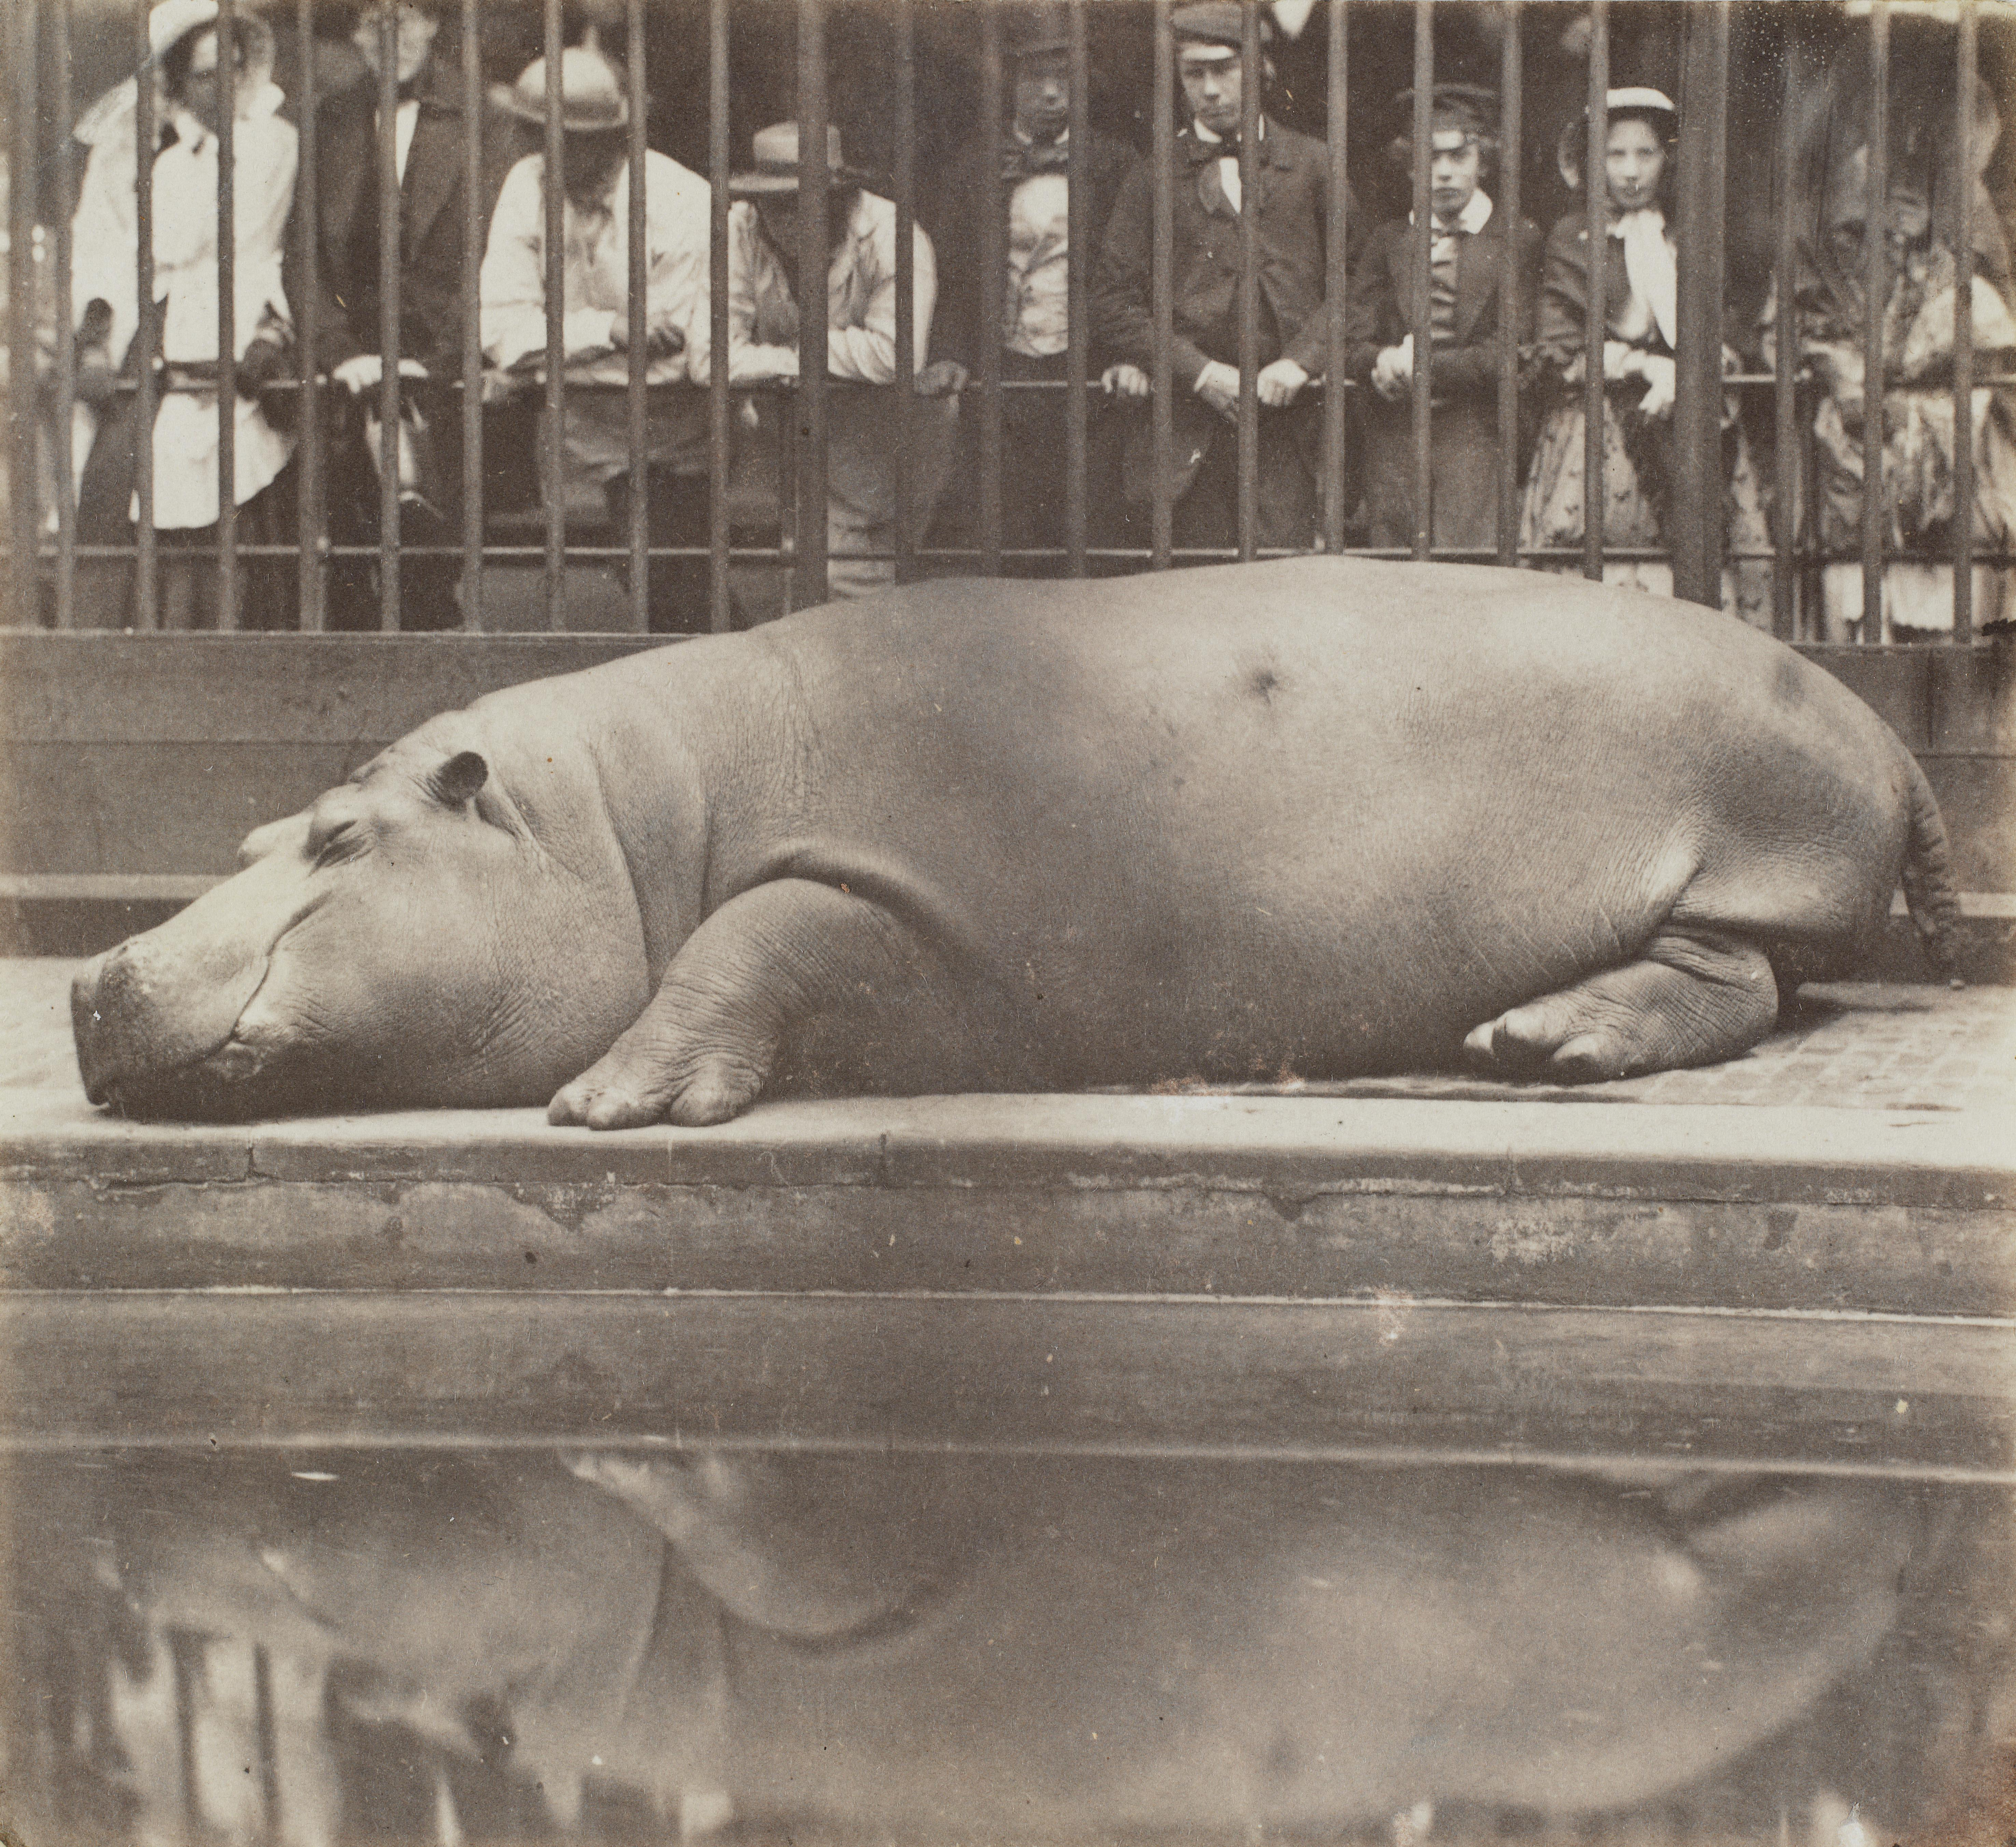 Please don't wake the hippo! The V&A unpacks its glorious photography archive